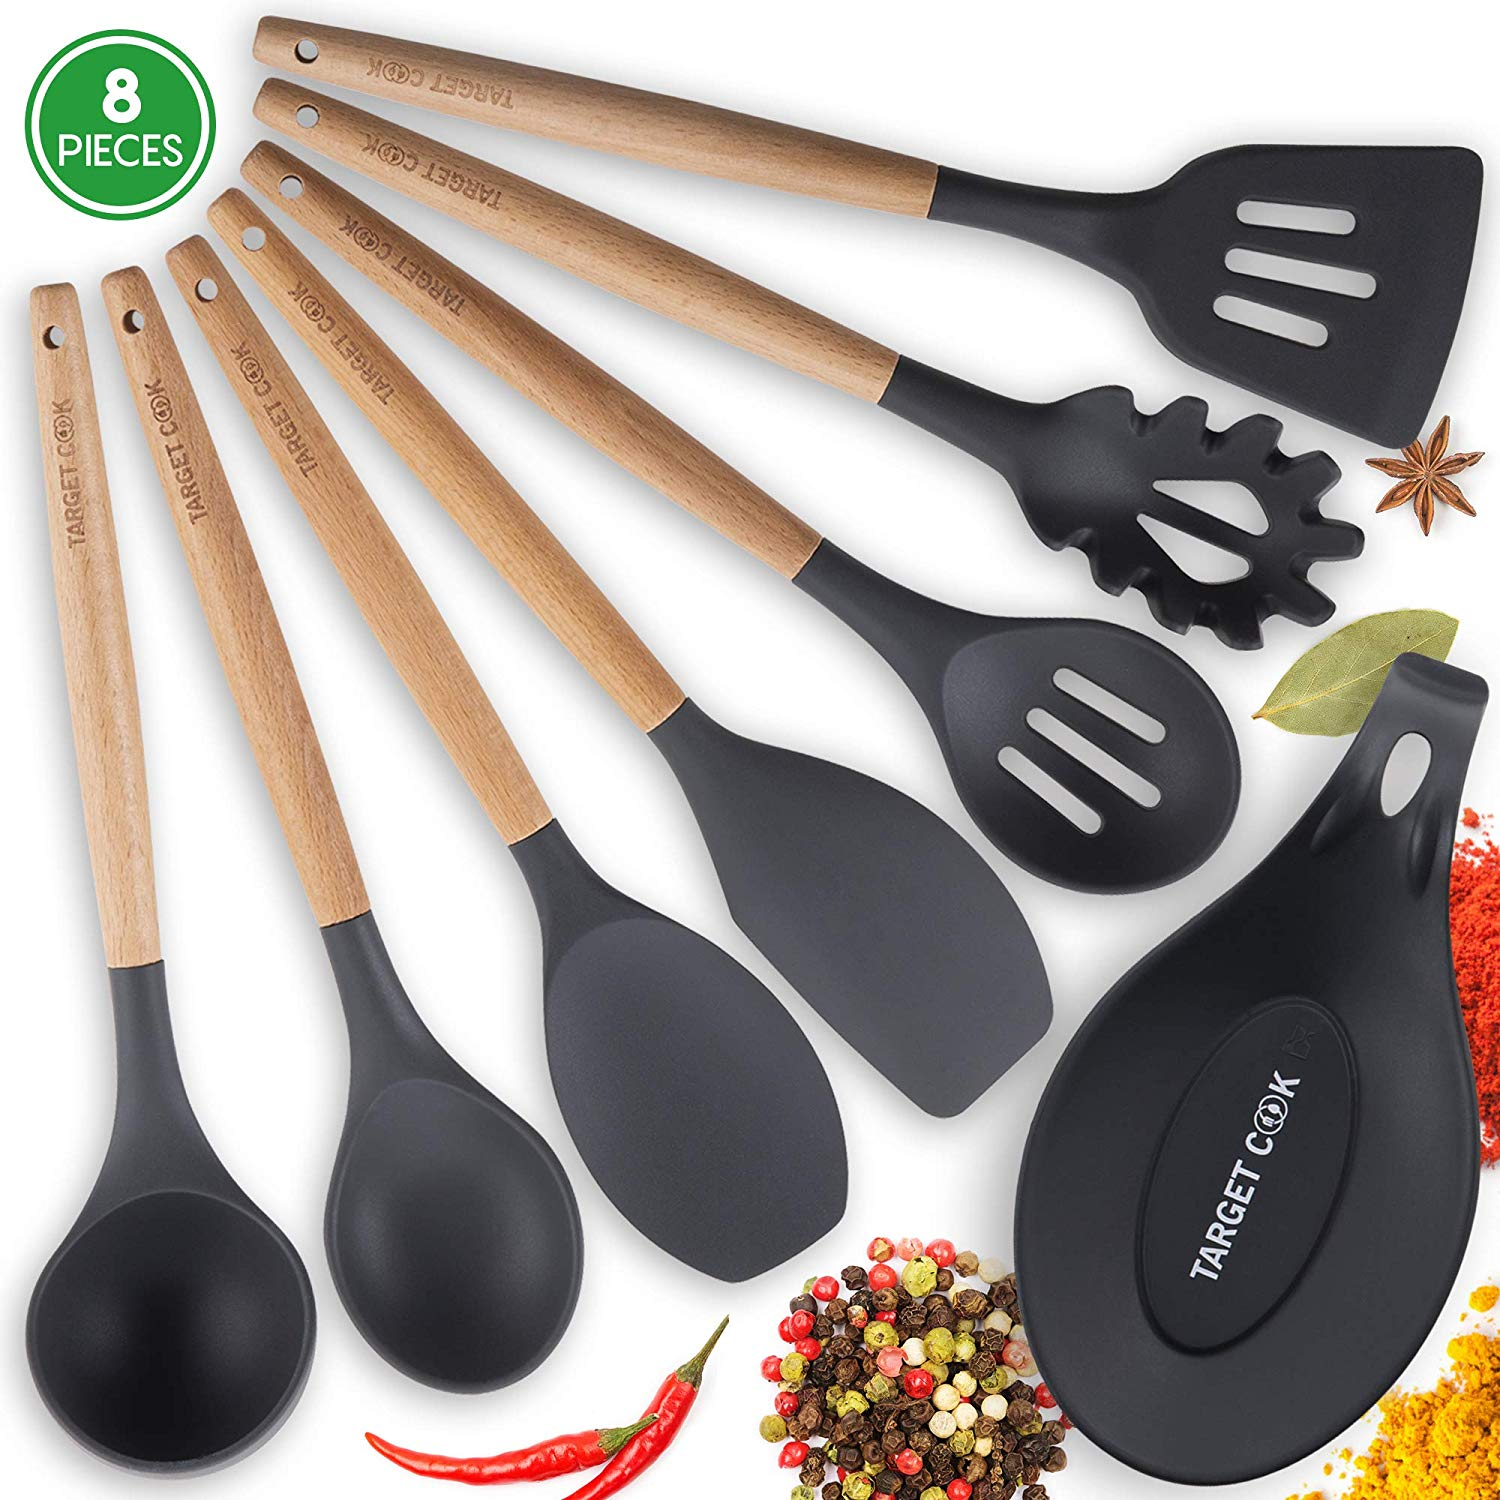 Kitchen Utensil Set - Silicone Cooking Utensils - Kitchen Utensils - Cooking Tools - Wooden Utensils - Wooden Handle Cooking Spoons